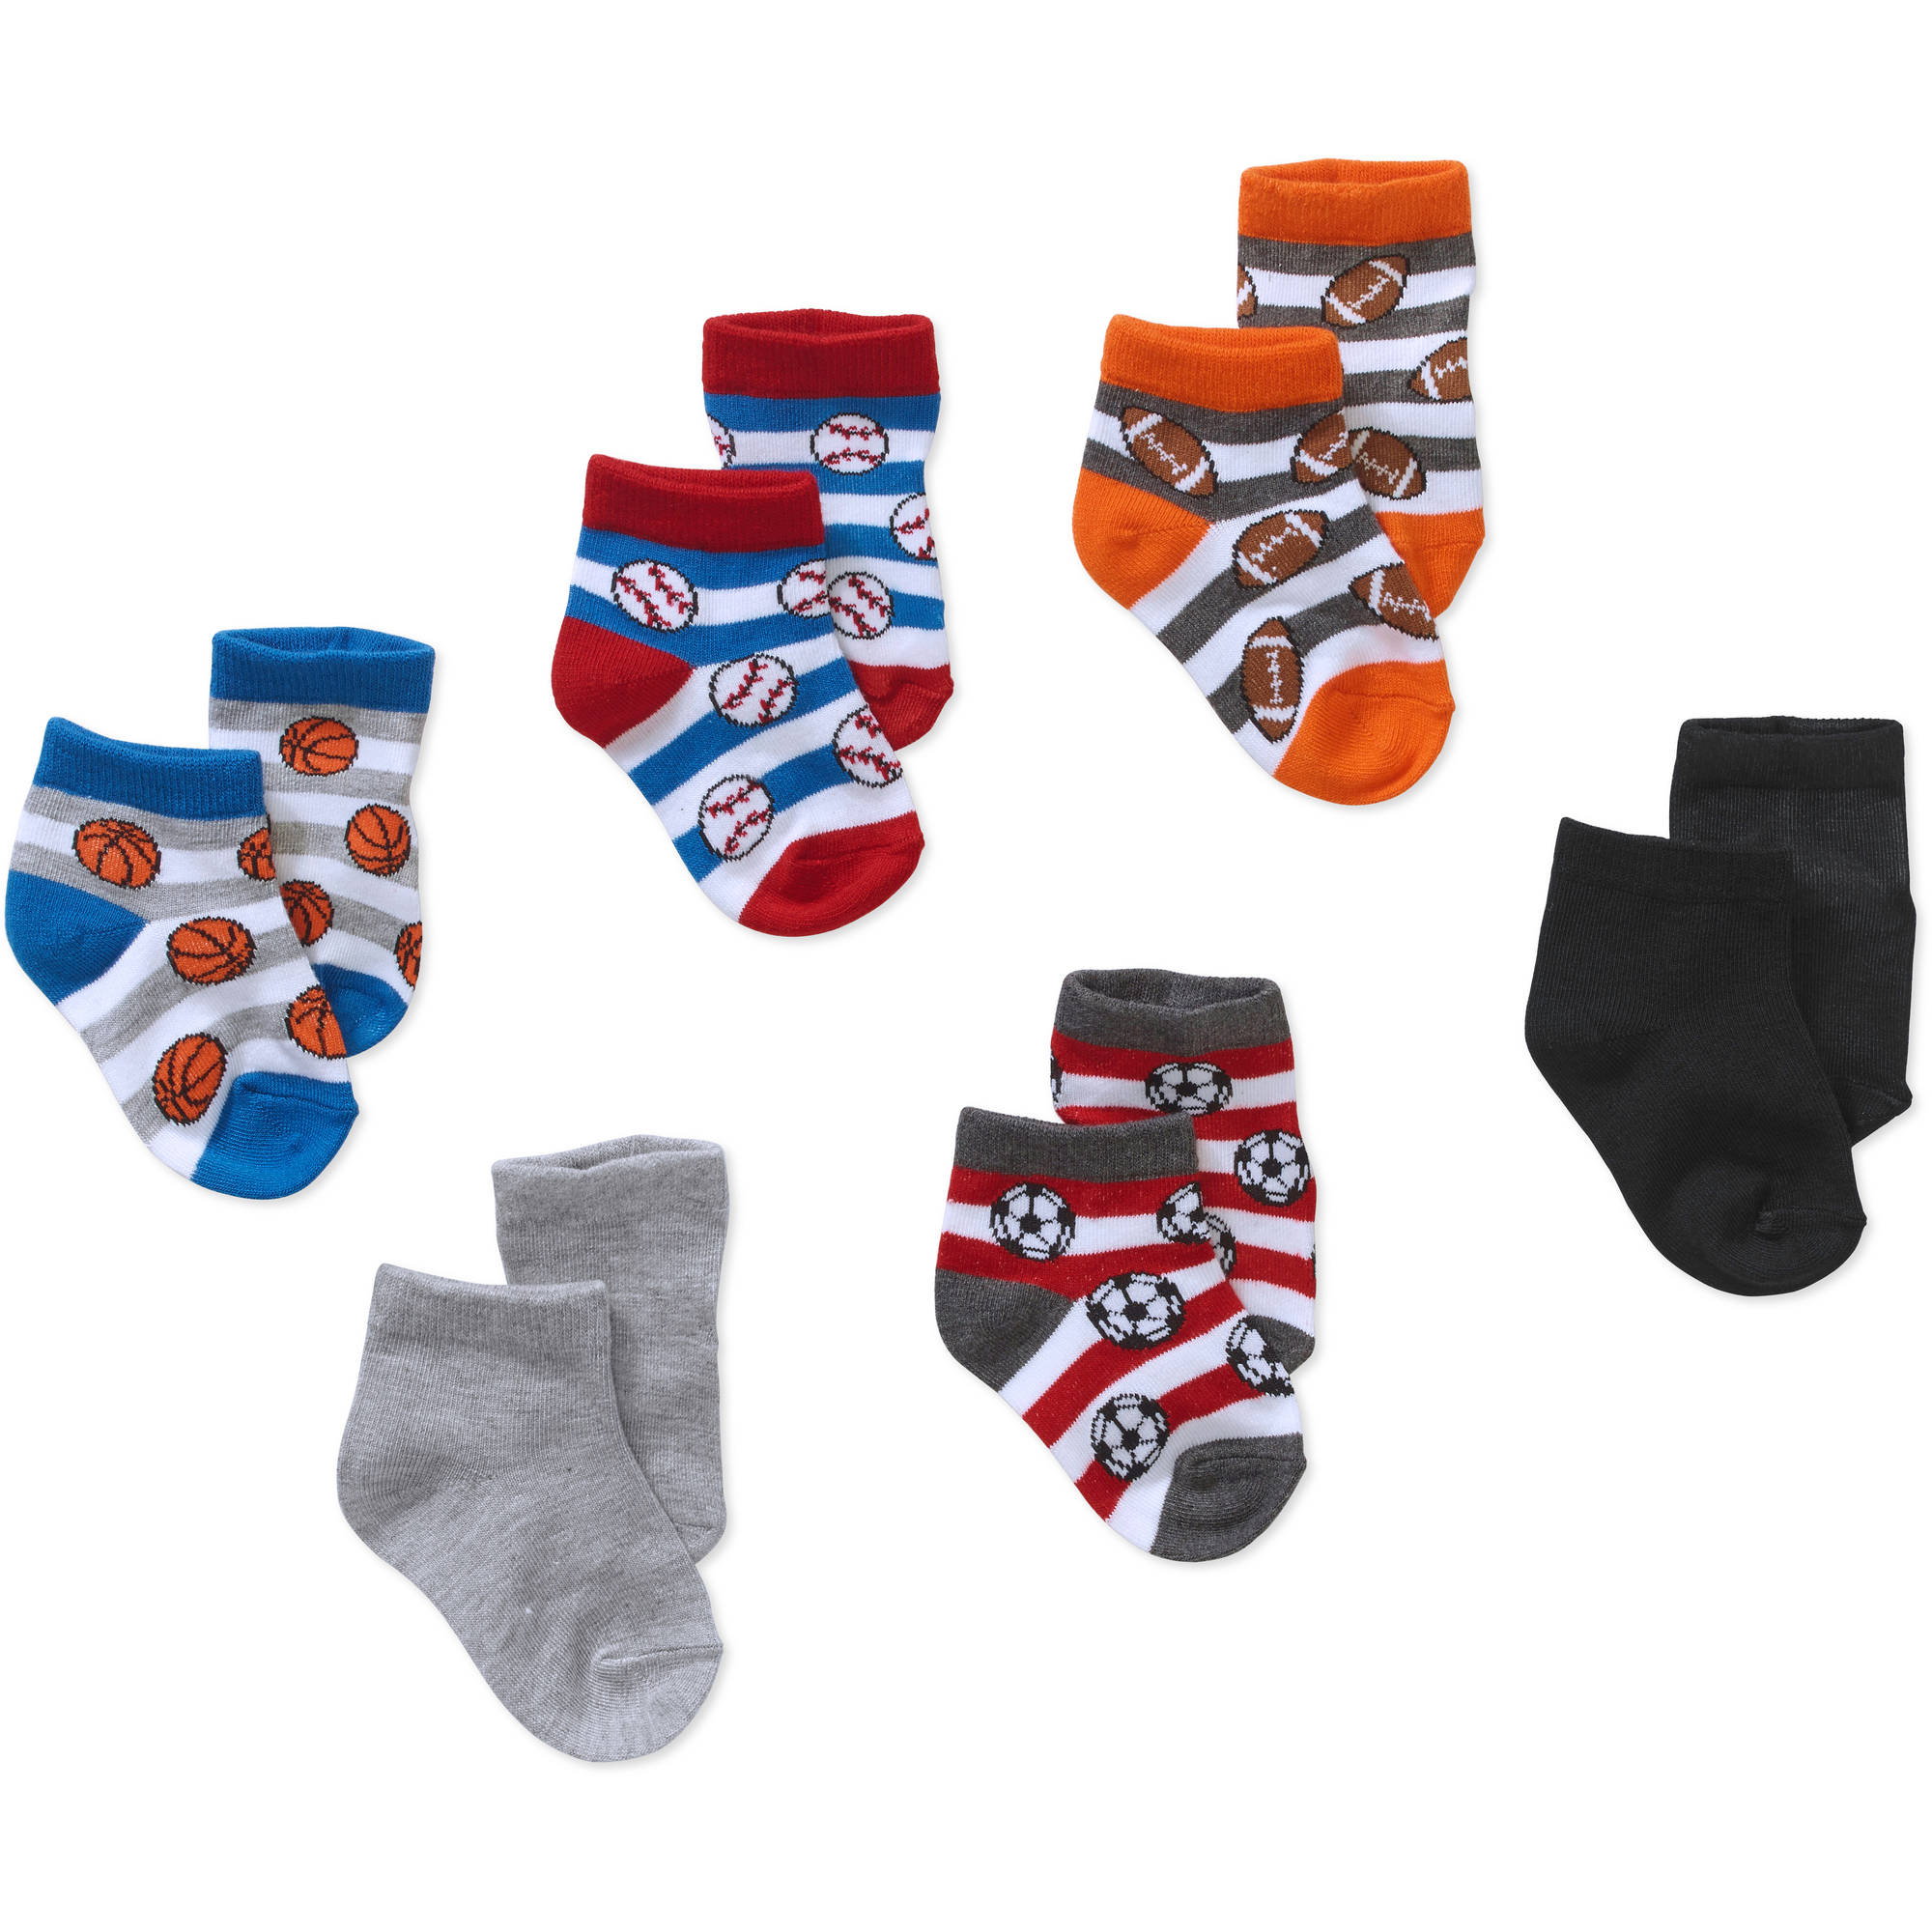 Newborn to Toddler Baby Boy Shorty Baseball Print Socks 6 Pack Ages